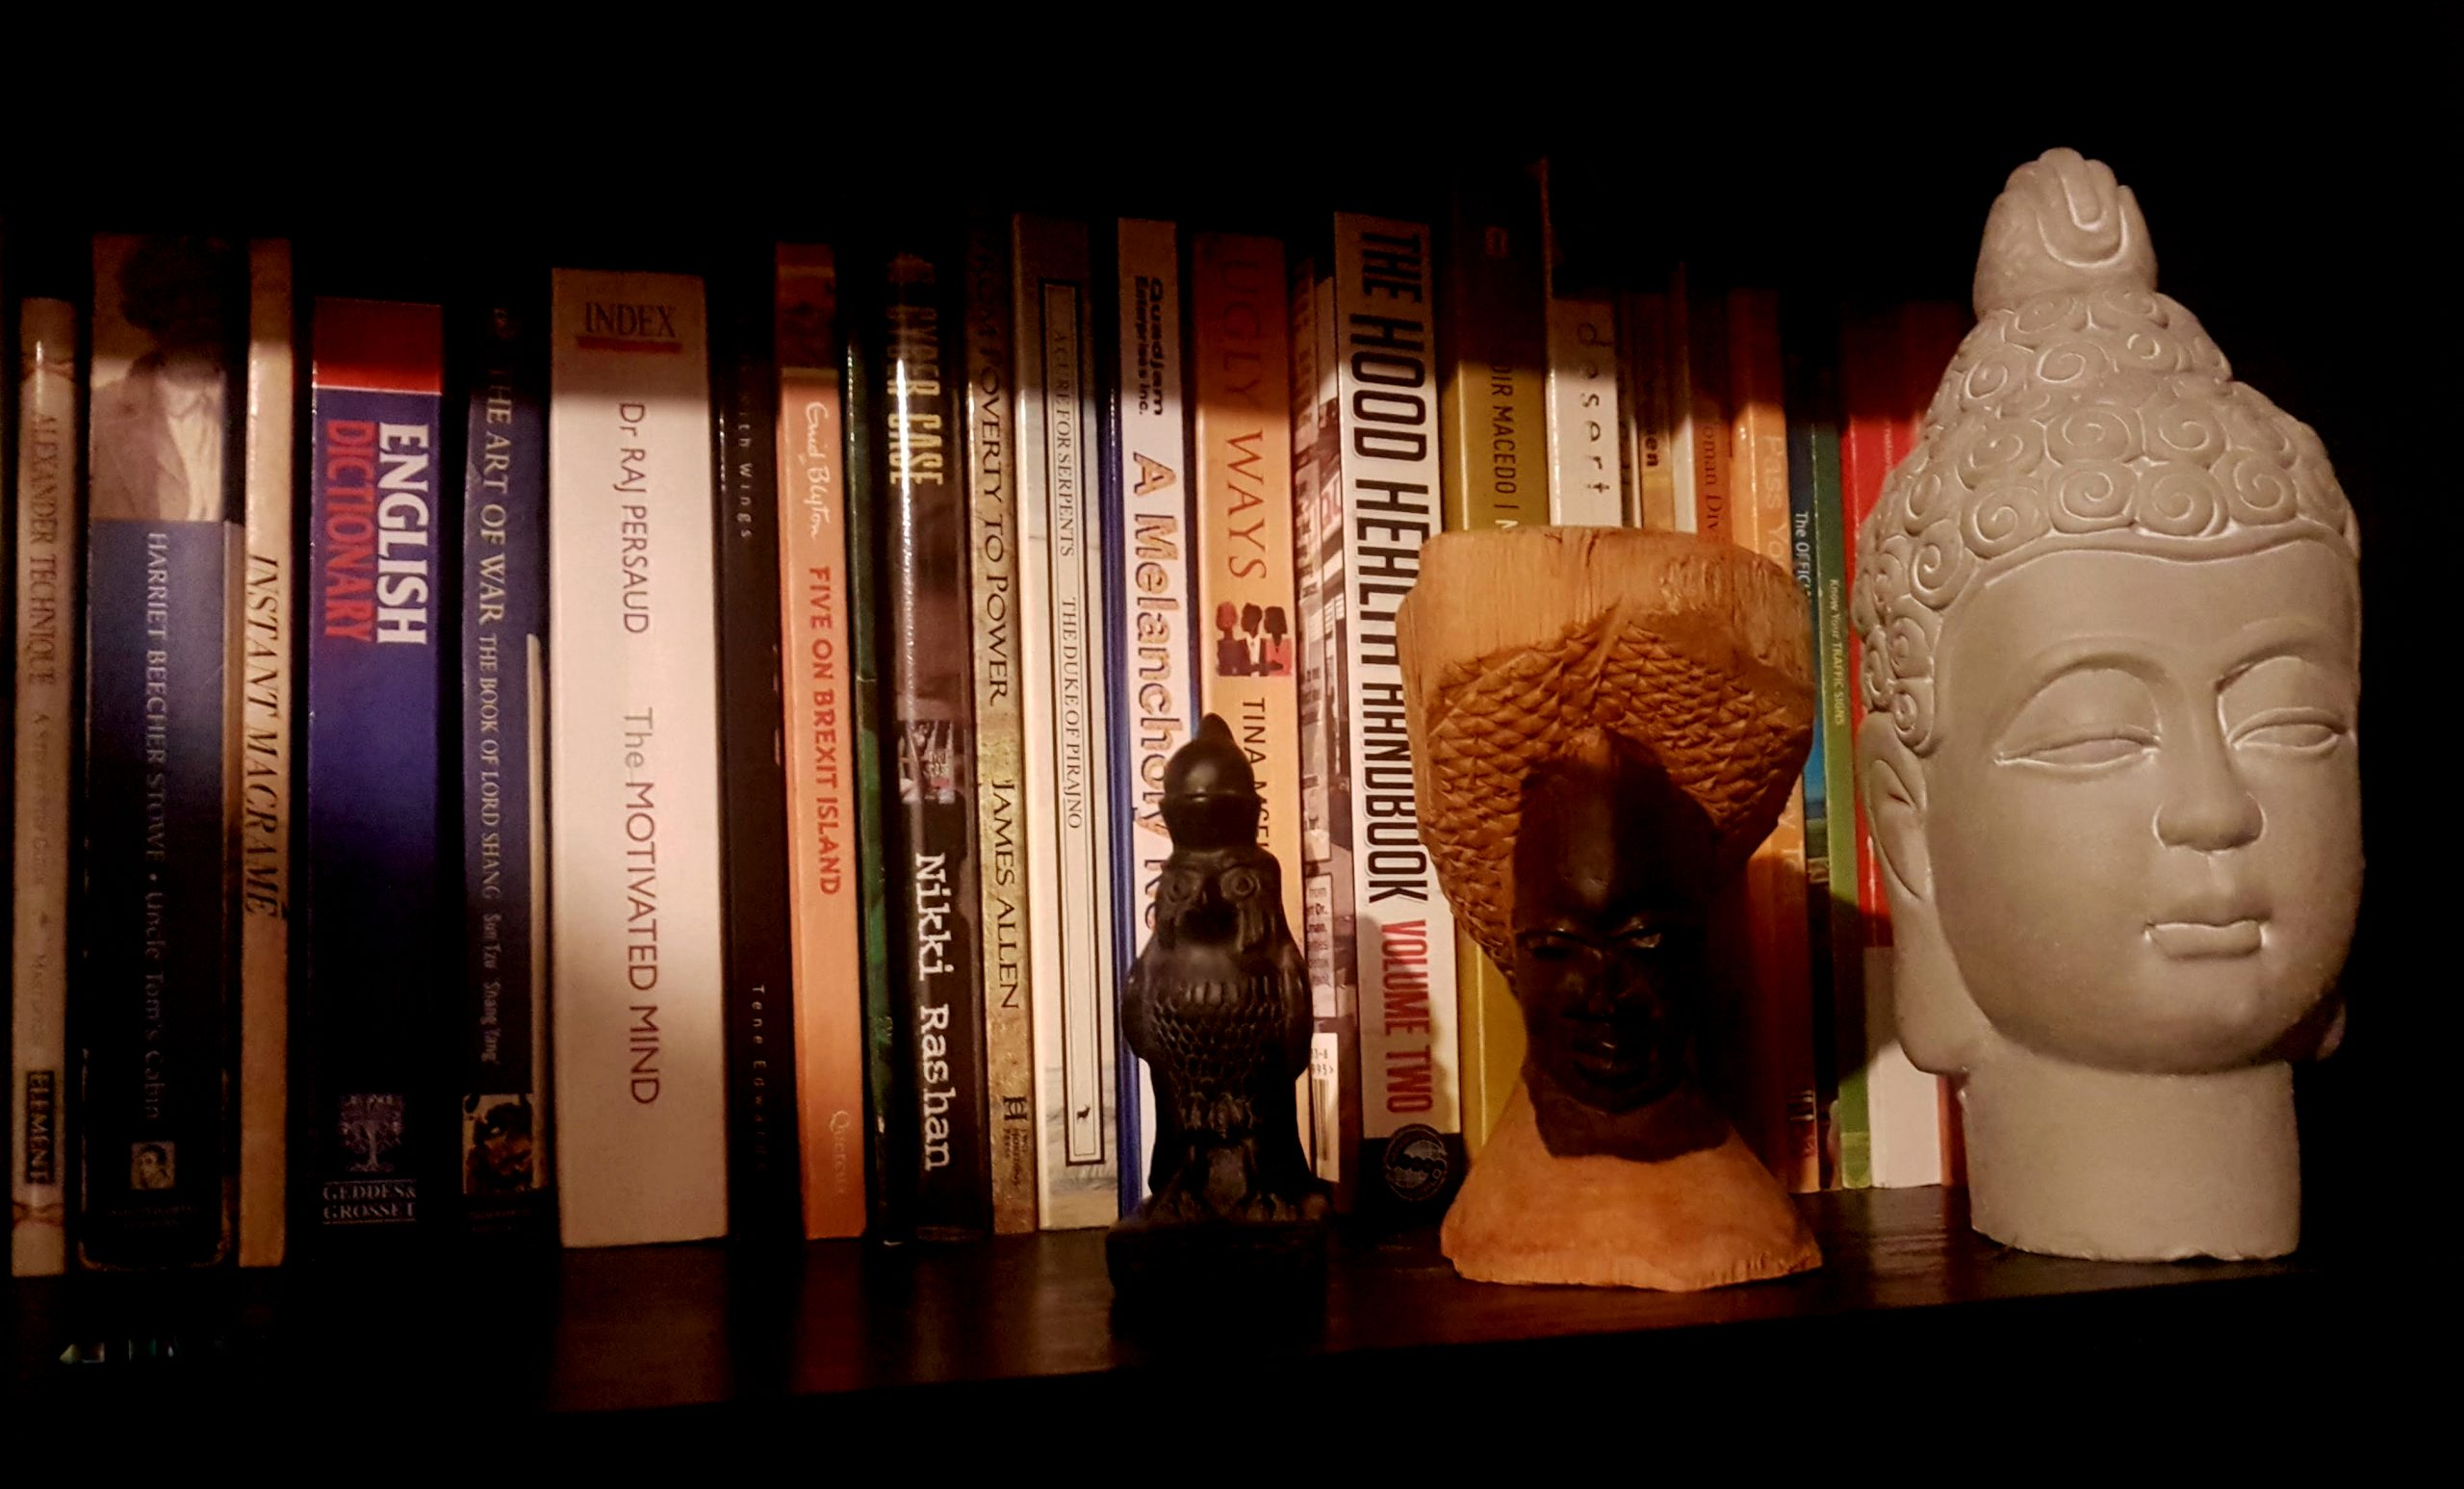 book collection lockdown buddha african rebeljewel rebel jewel